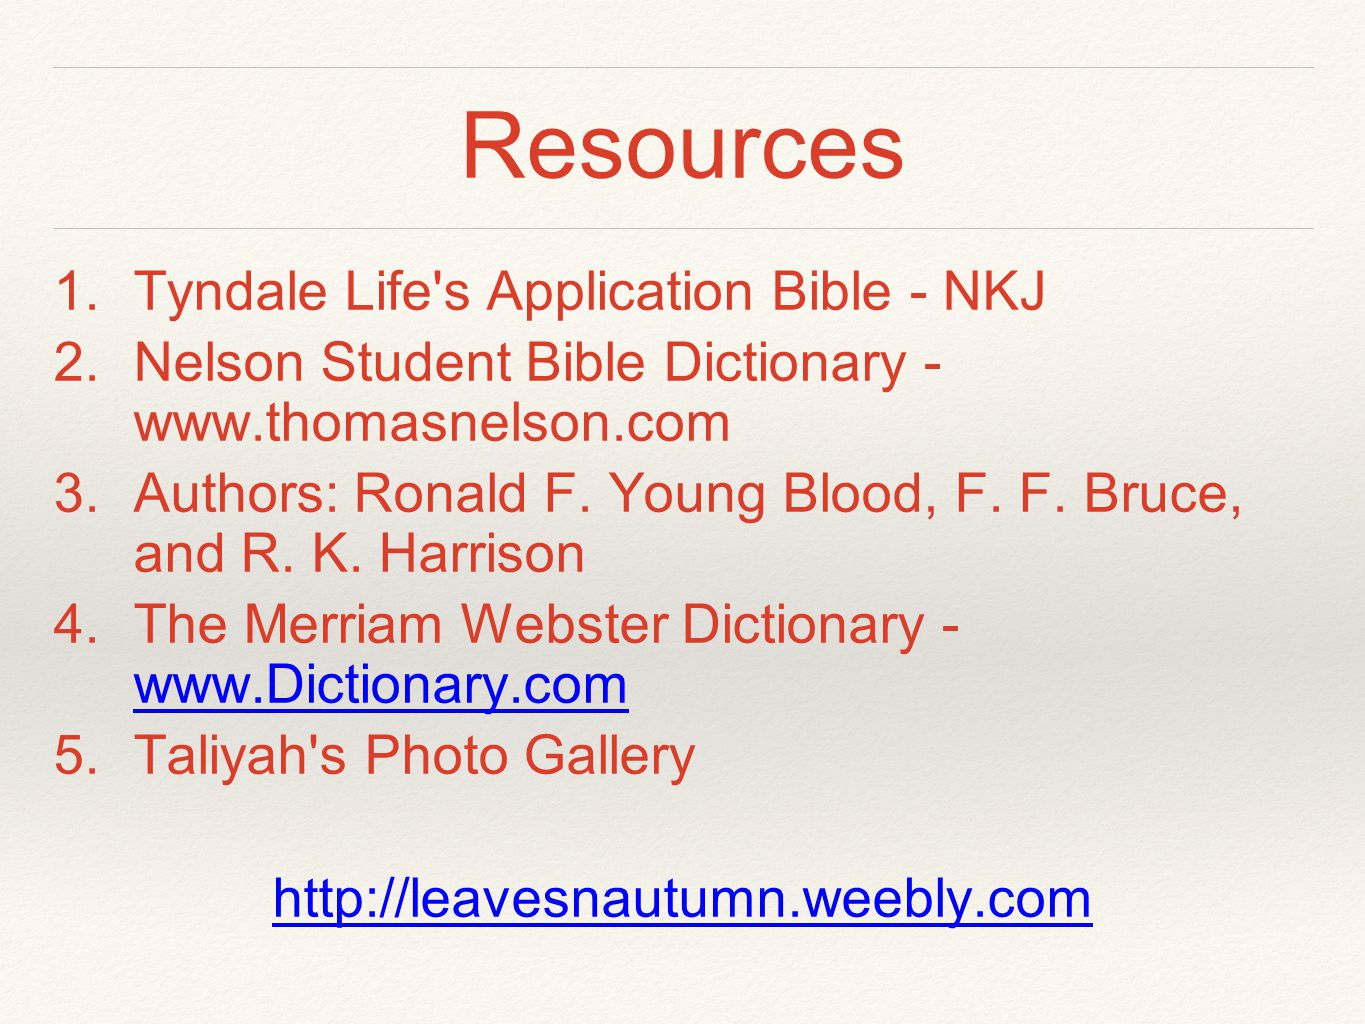 Resources 1.Tyndale Life's Application Bible - NKJ 2.Nelson Student Bible Dictionary - www.thomasnelson.com 3.Authors: Ronald F. Young Blood, F. F. Br